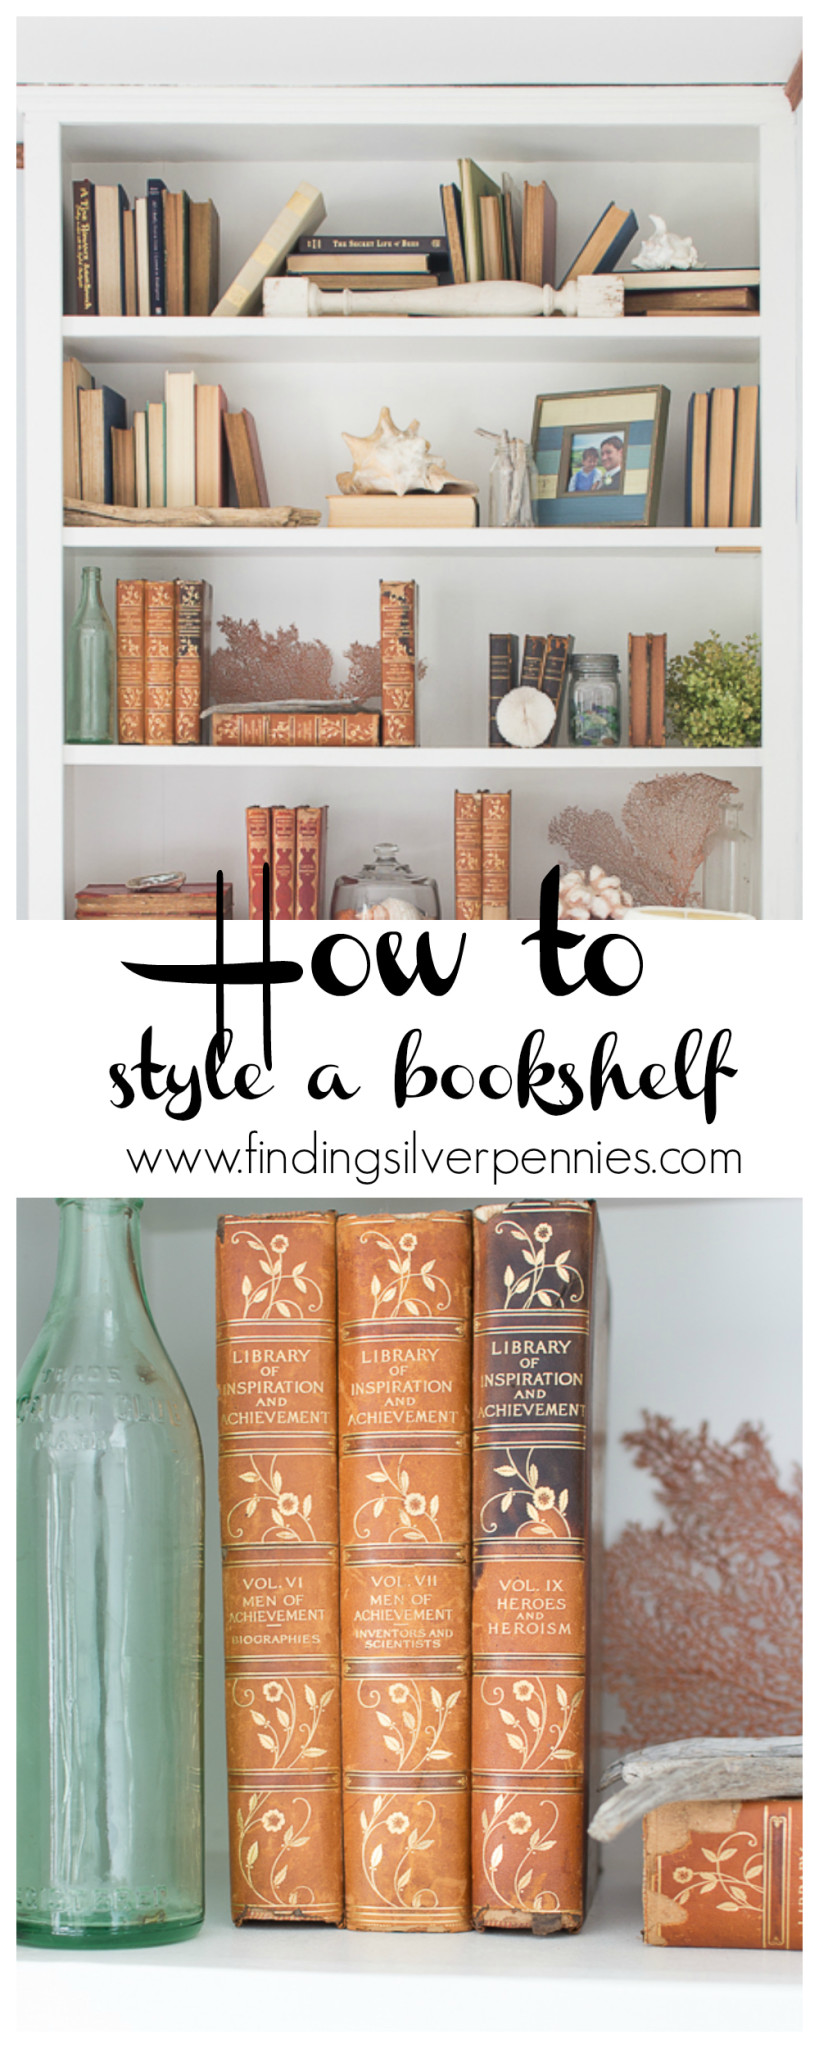 how to style a bookshelf - How To Decorate Bookshelves